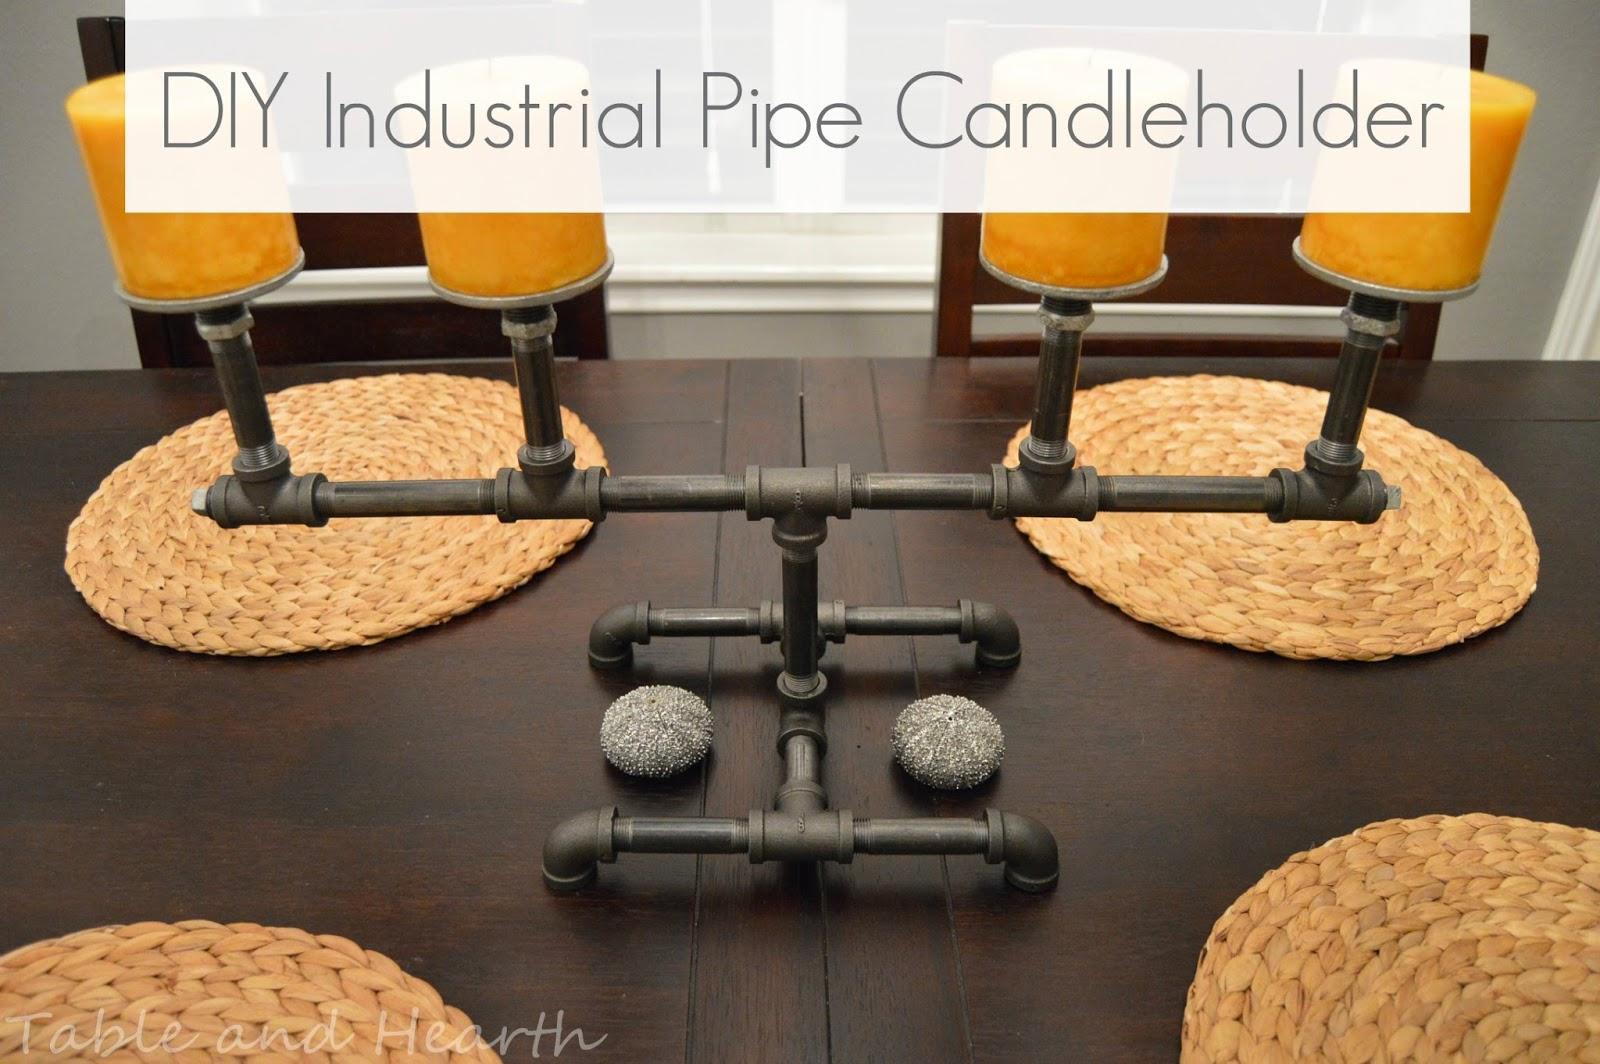 http://www.tableandhearthblog.com/2014/09/industrial-pipe-candleholder.html